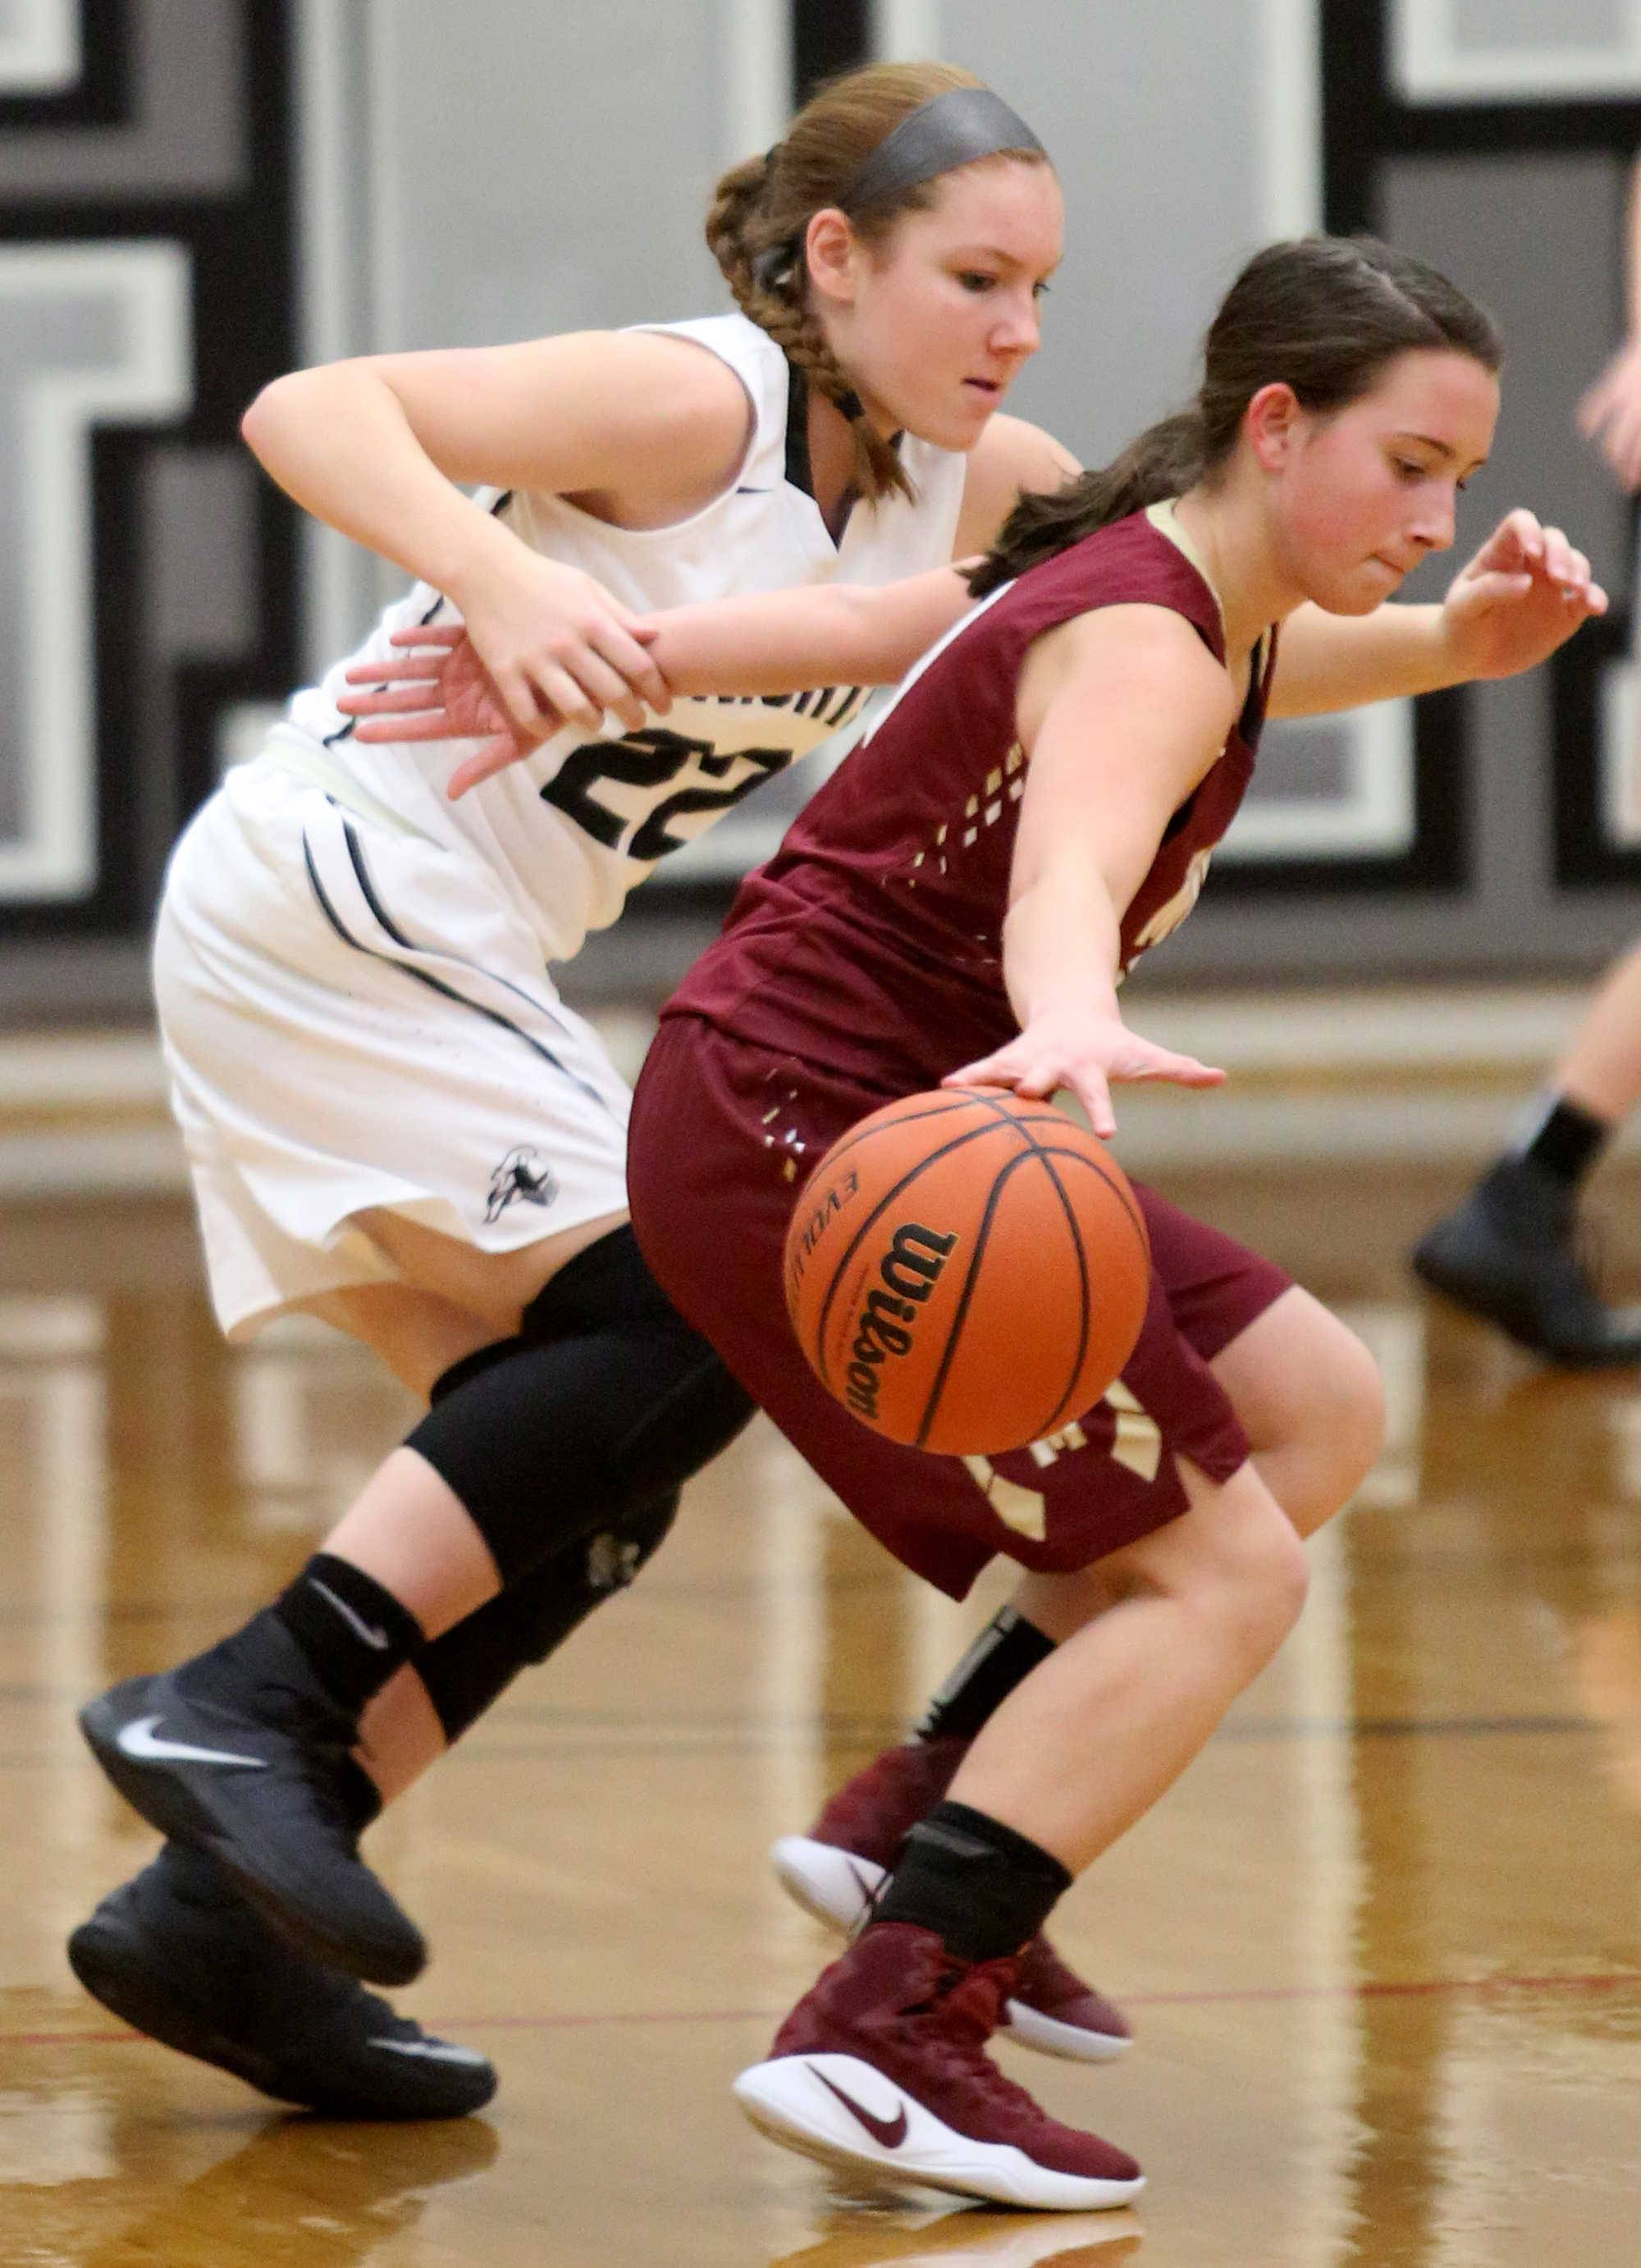 Kaneland's Maddy Wheatley, left, keeps up with Morris' Paige Valentine during varsity basketball action at Kaneland Tuesday night.